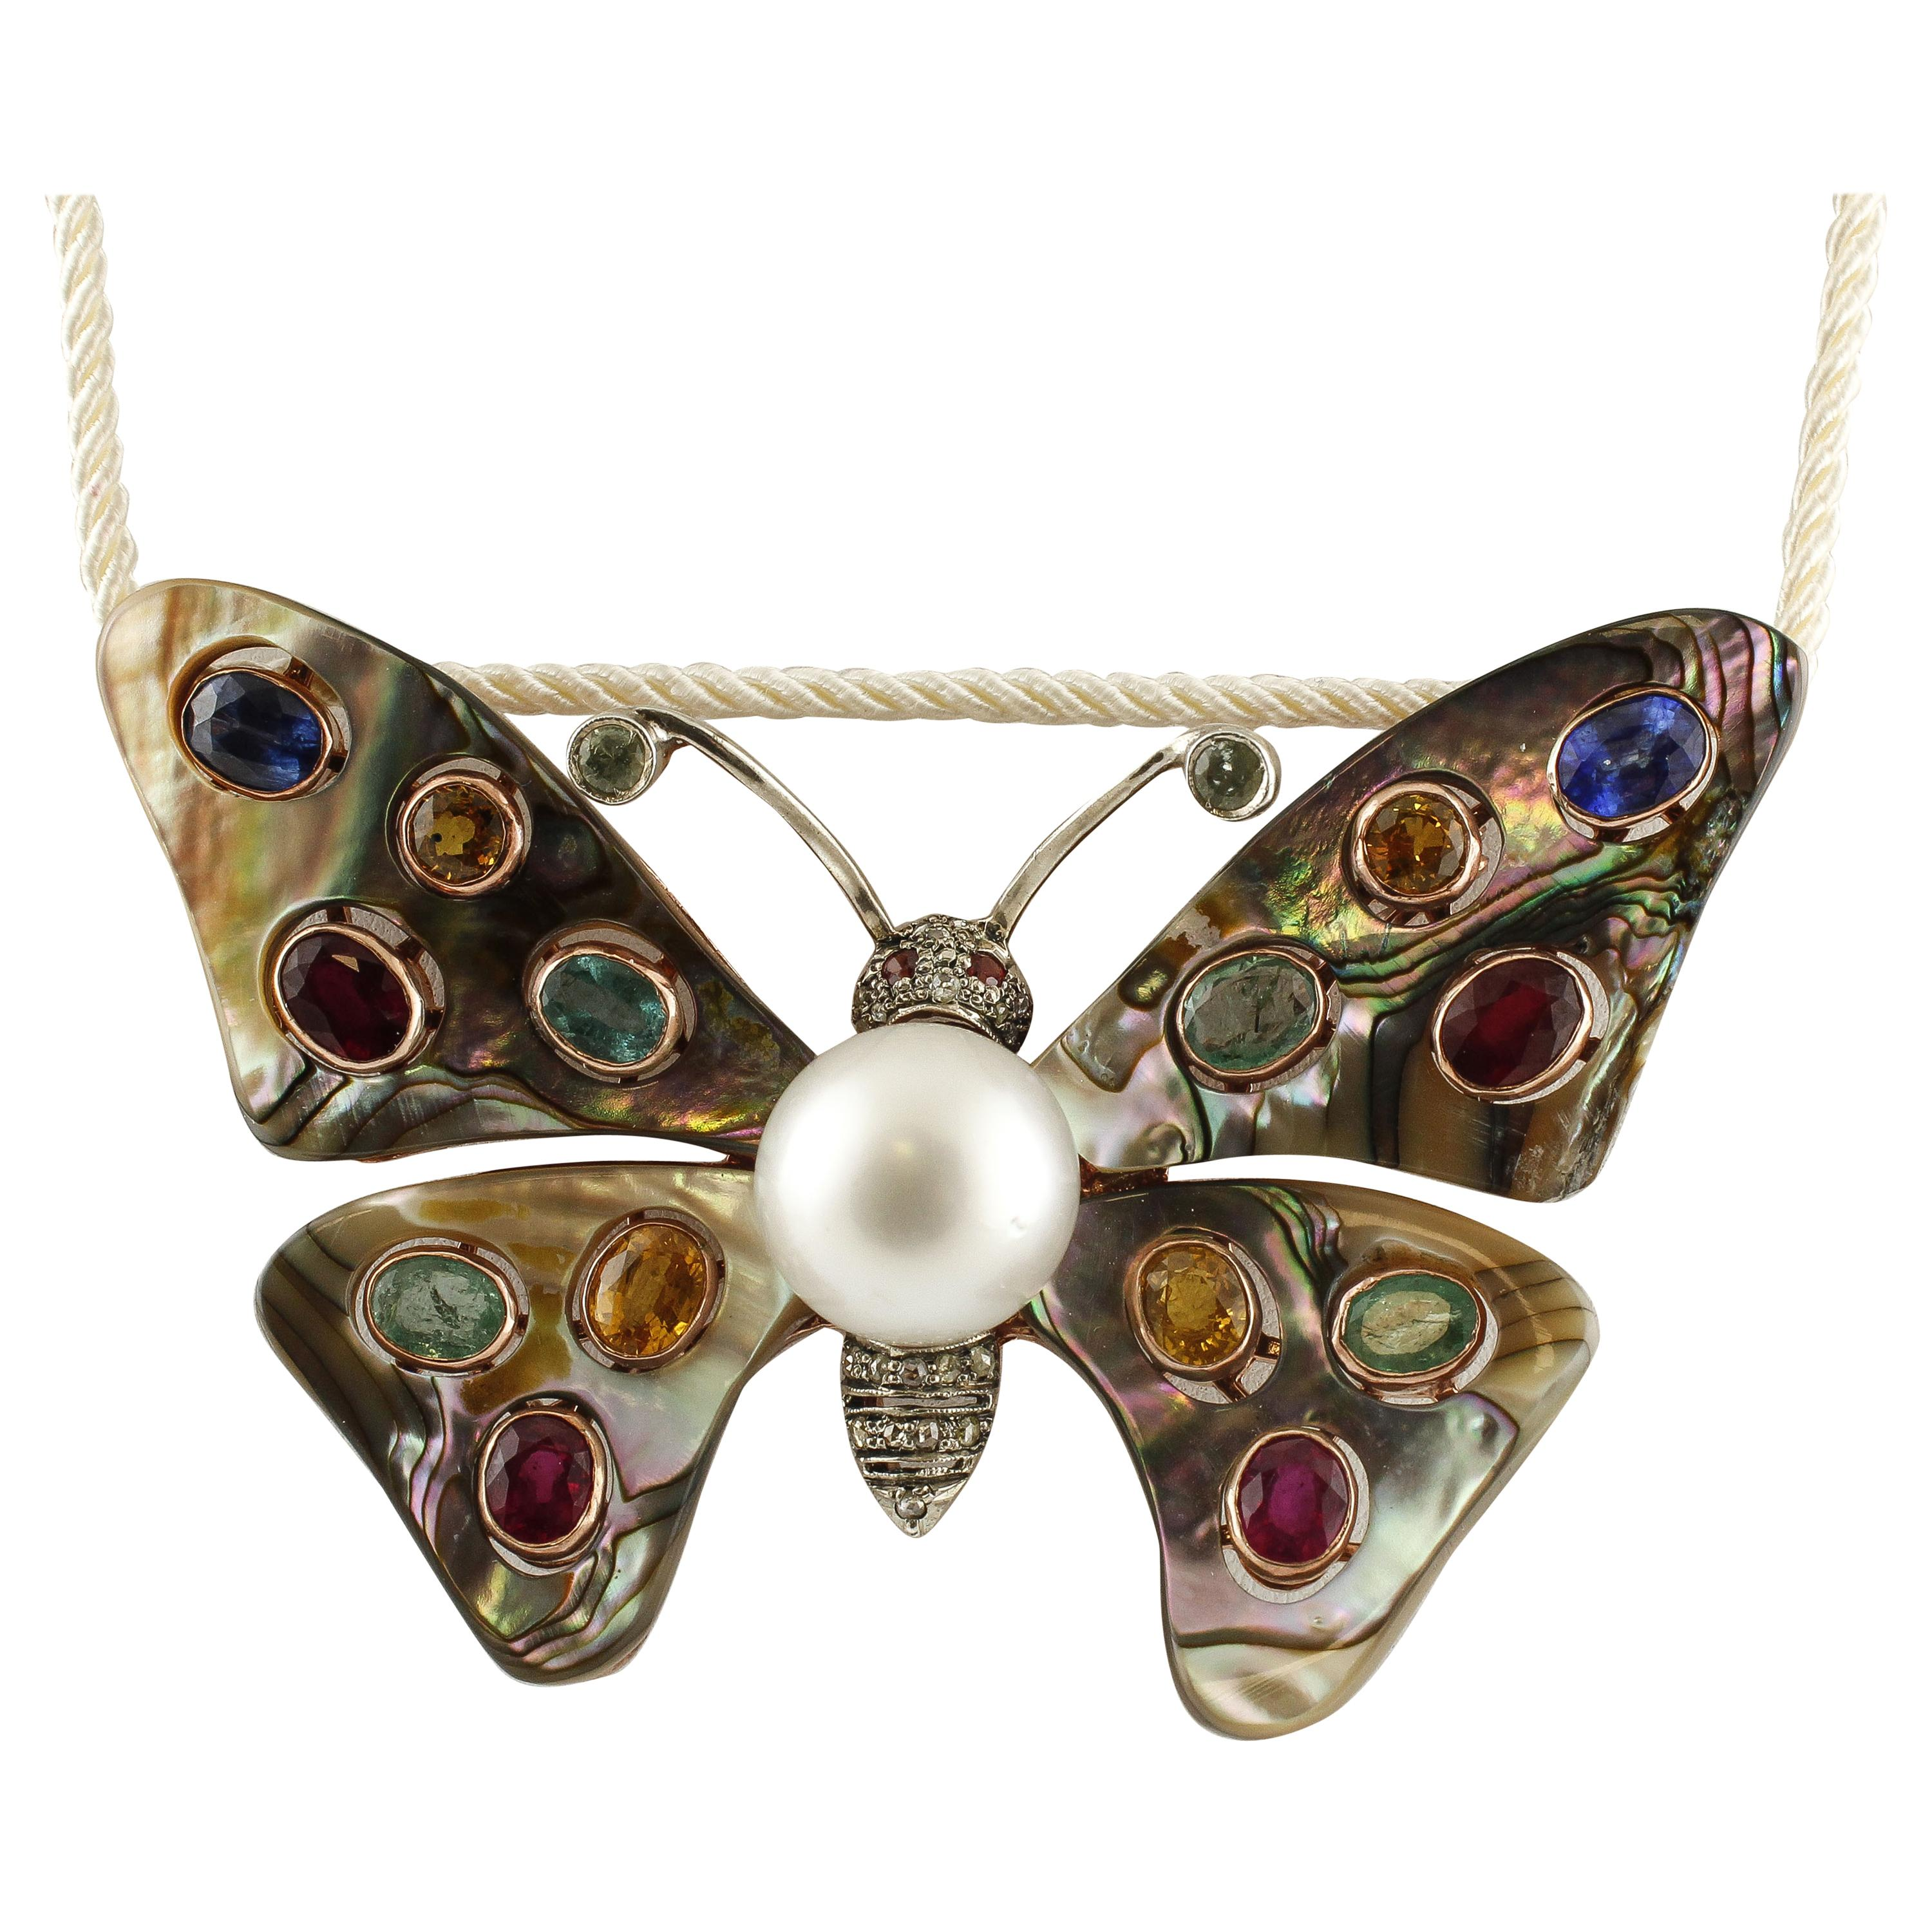 Australian Pearl, Diamonds, Emeralds, Rubies, Sapphires, Retro Butterfly Brooch